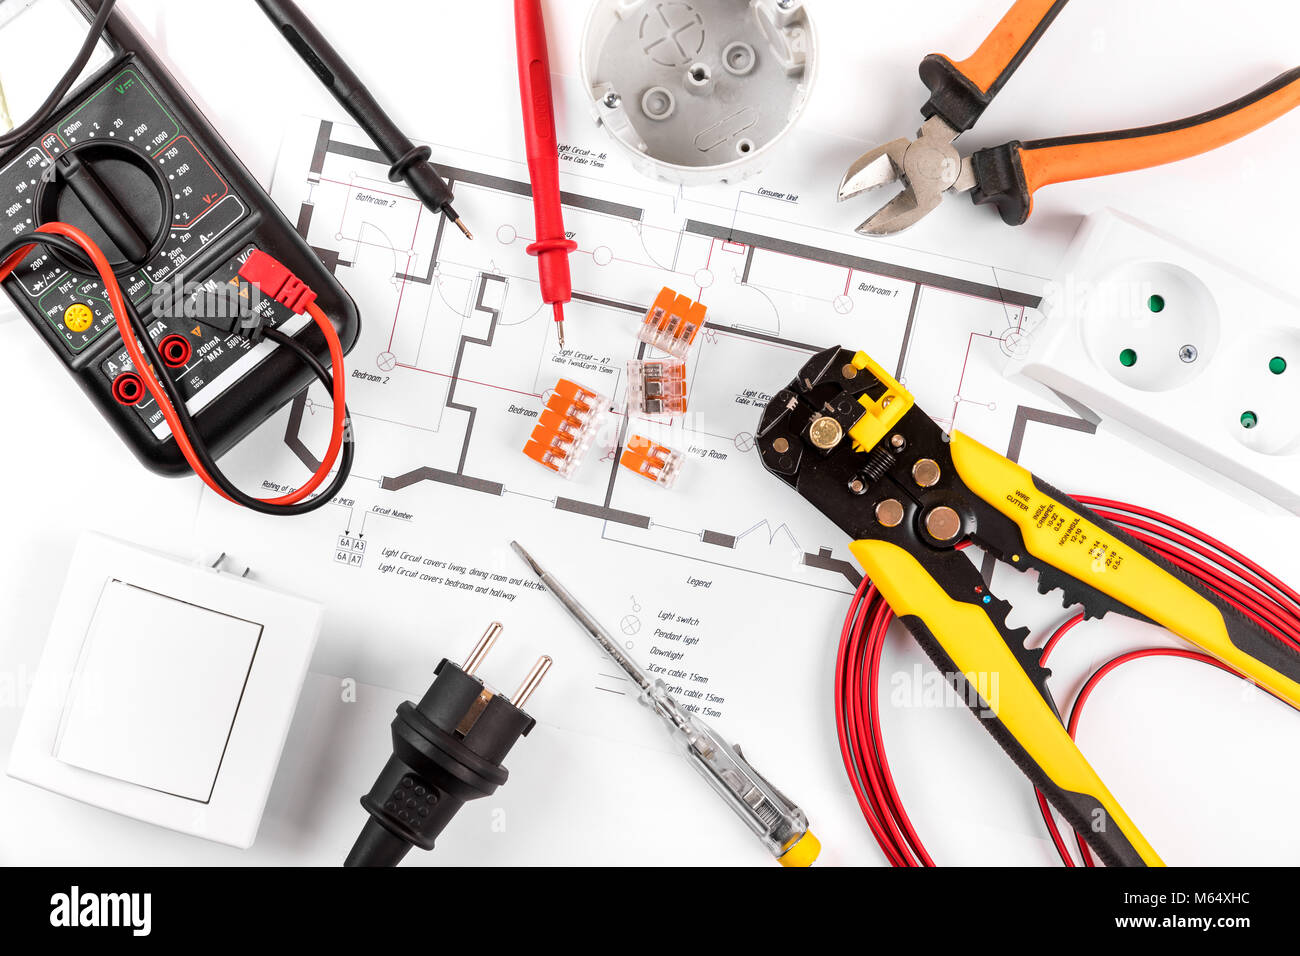 hight resolution of electrical tools and equipment on circuit diagram top view